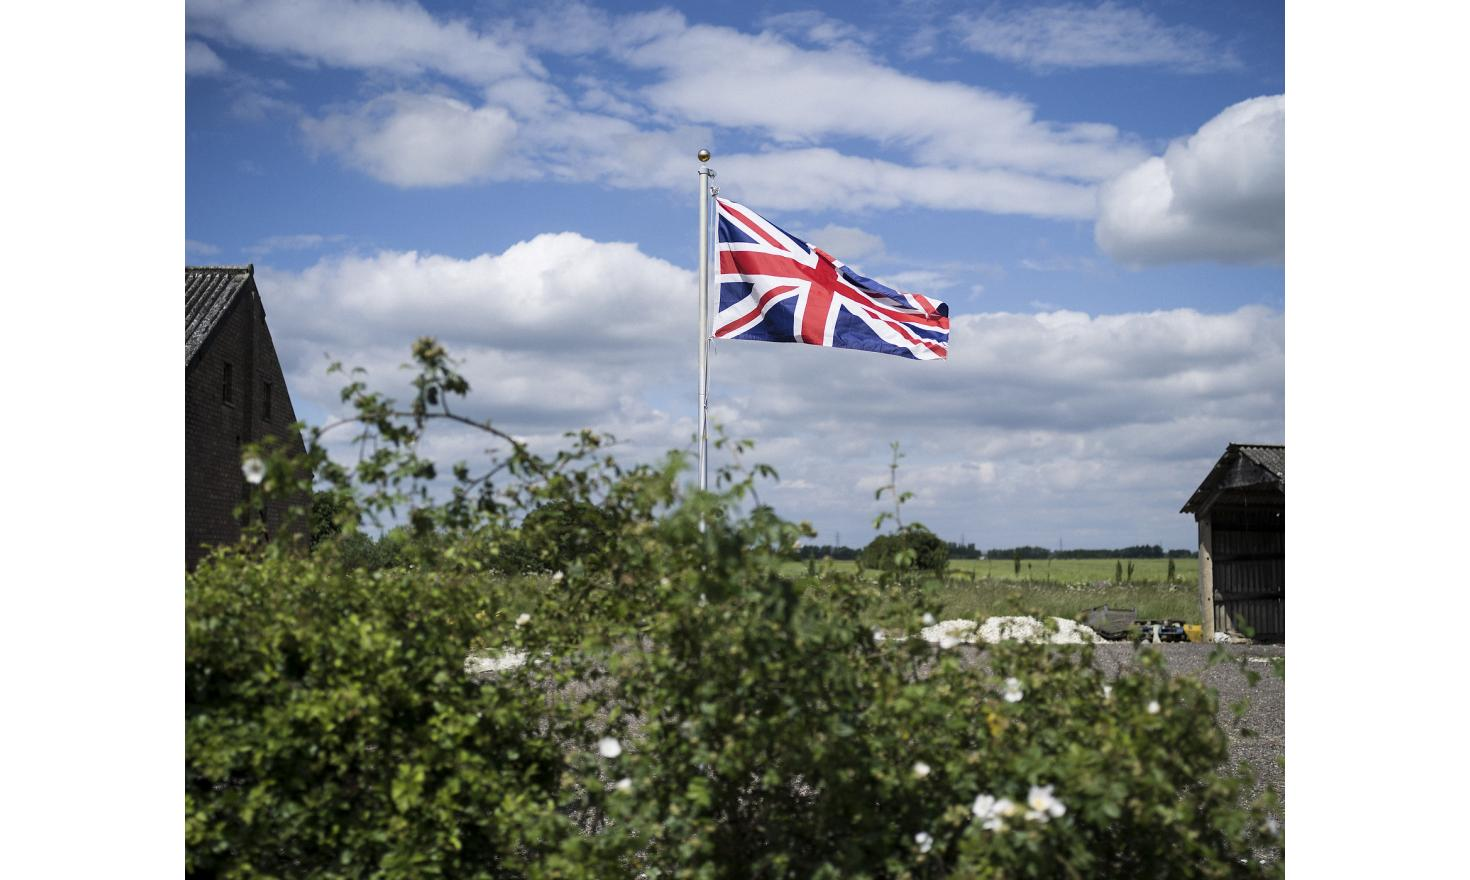 A union jack flag, flying in a field near the town of Wisbech in the agricultural flatlands of the east of England, a few miles from the town of Boston.